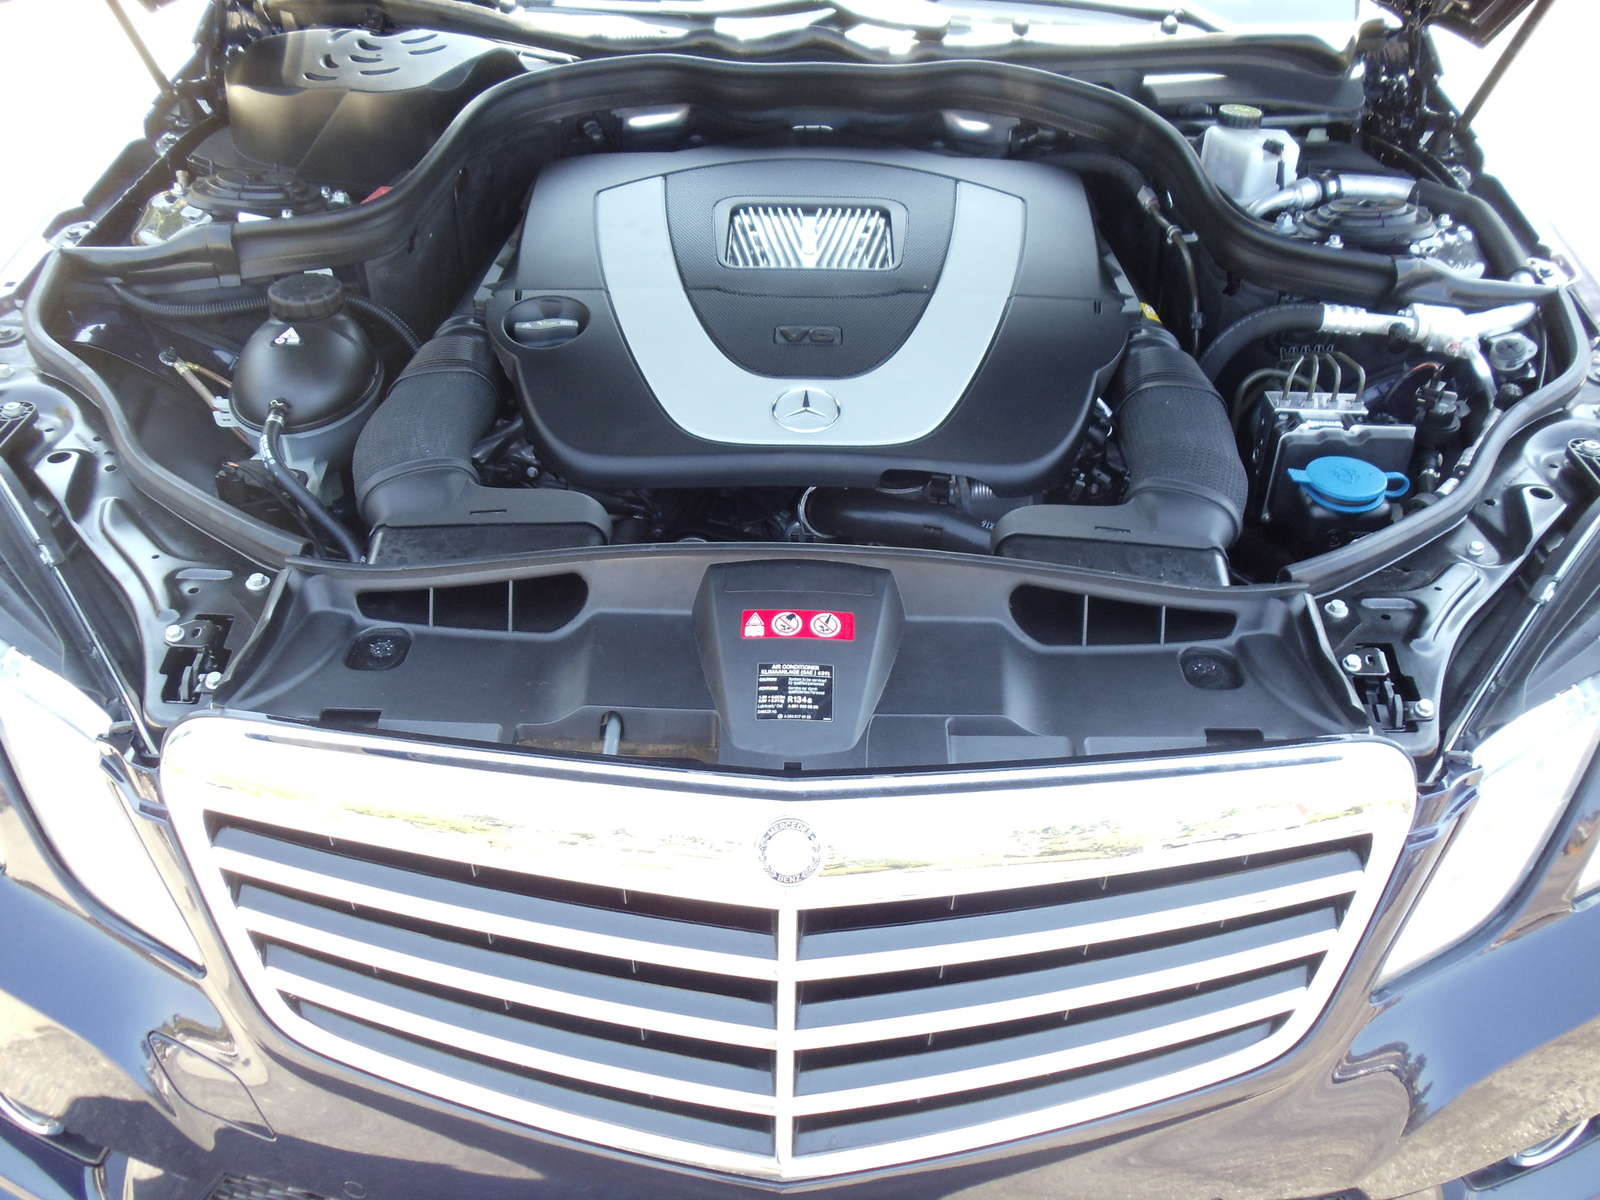 Mercedes e350 convertible battery location mercedes get for Mercedes benz locator